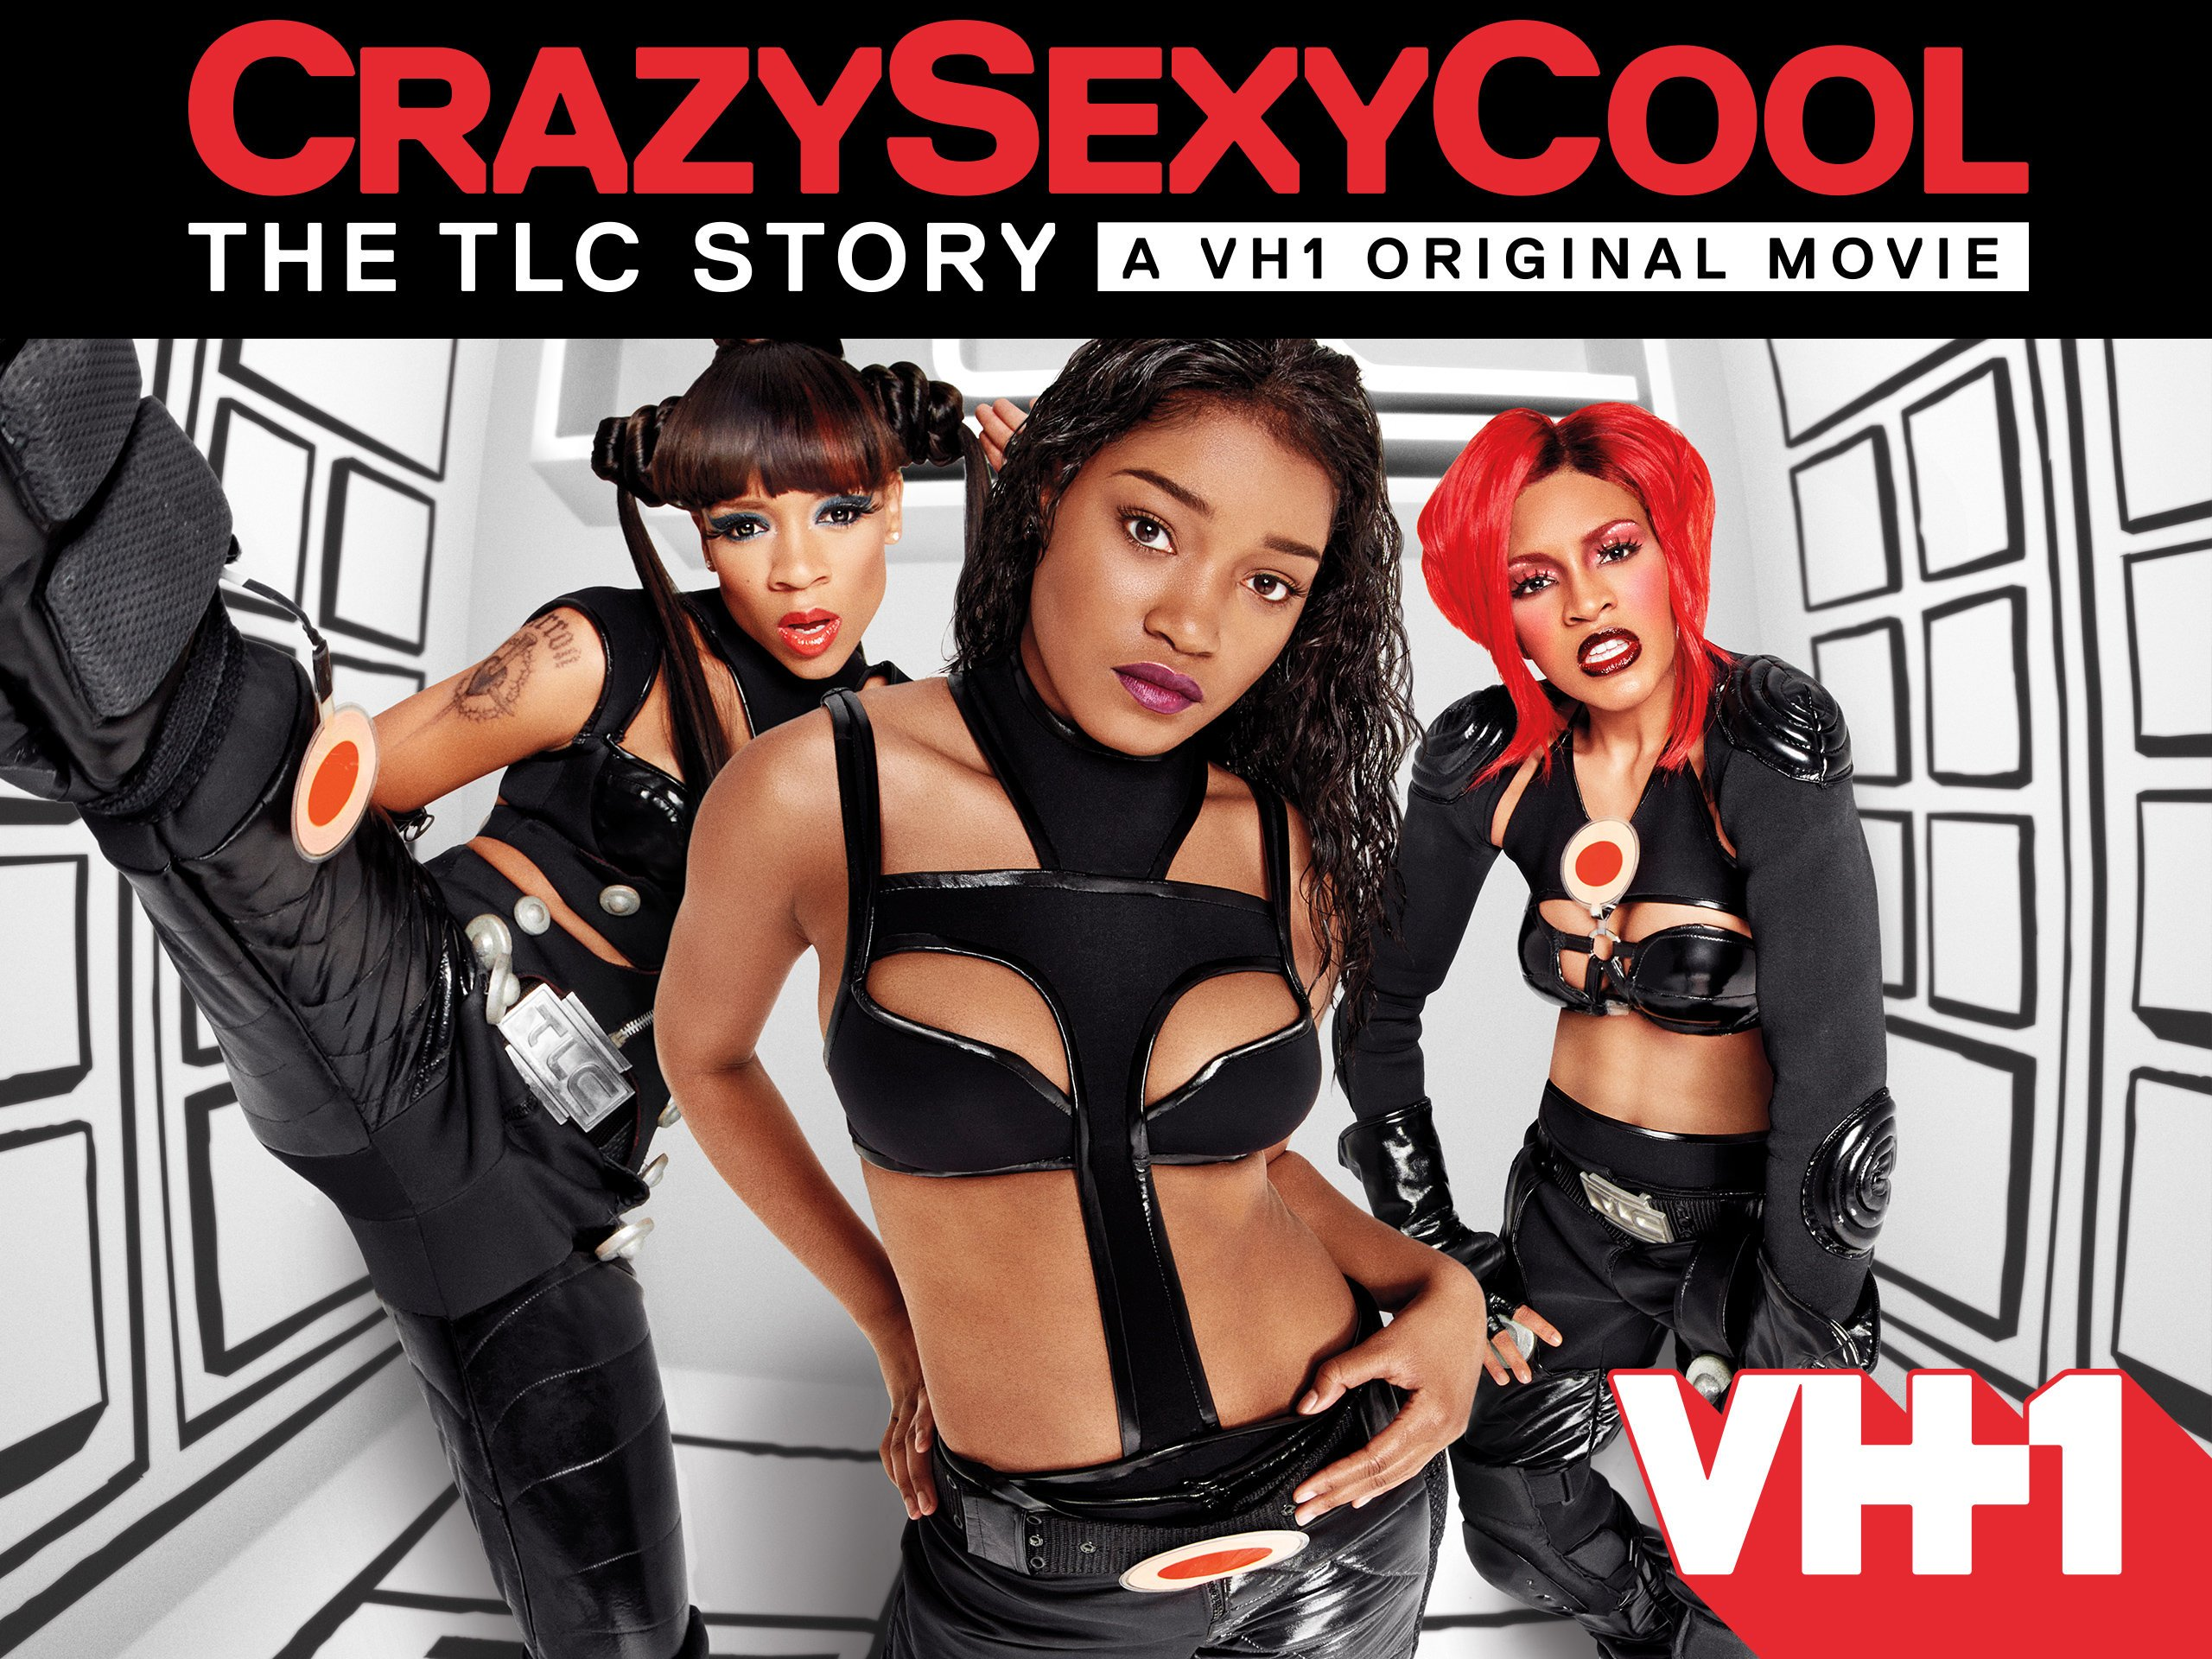 Vh1 crazysexycool the tlc story full movie